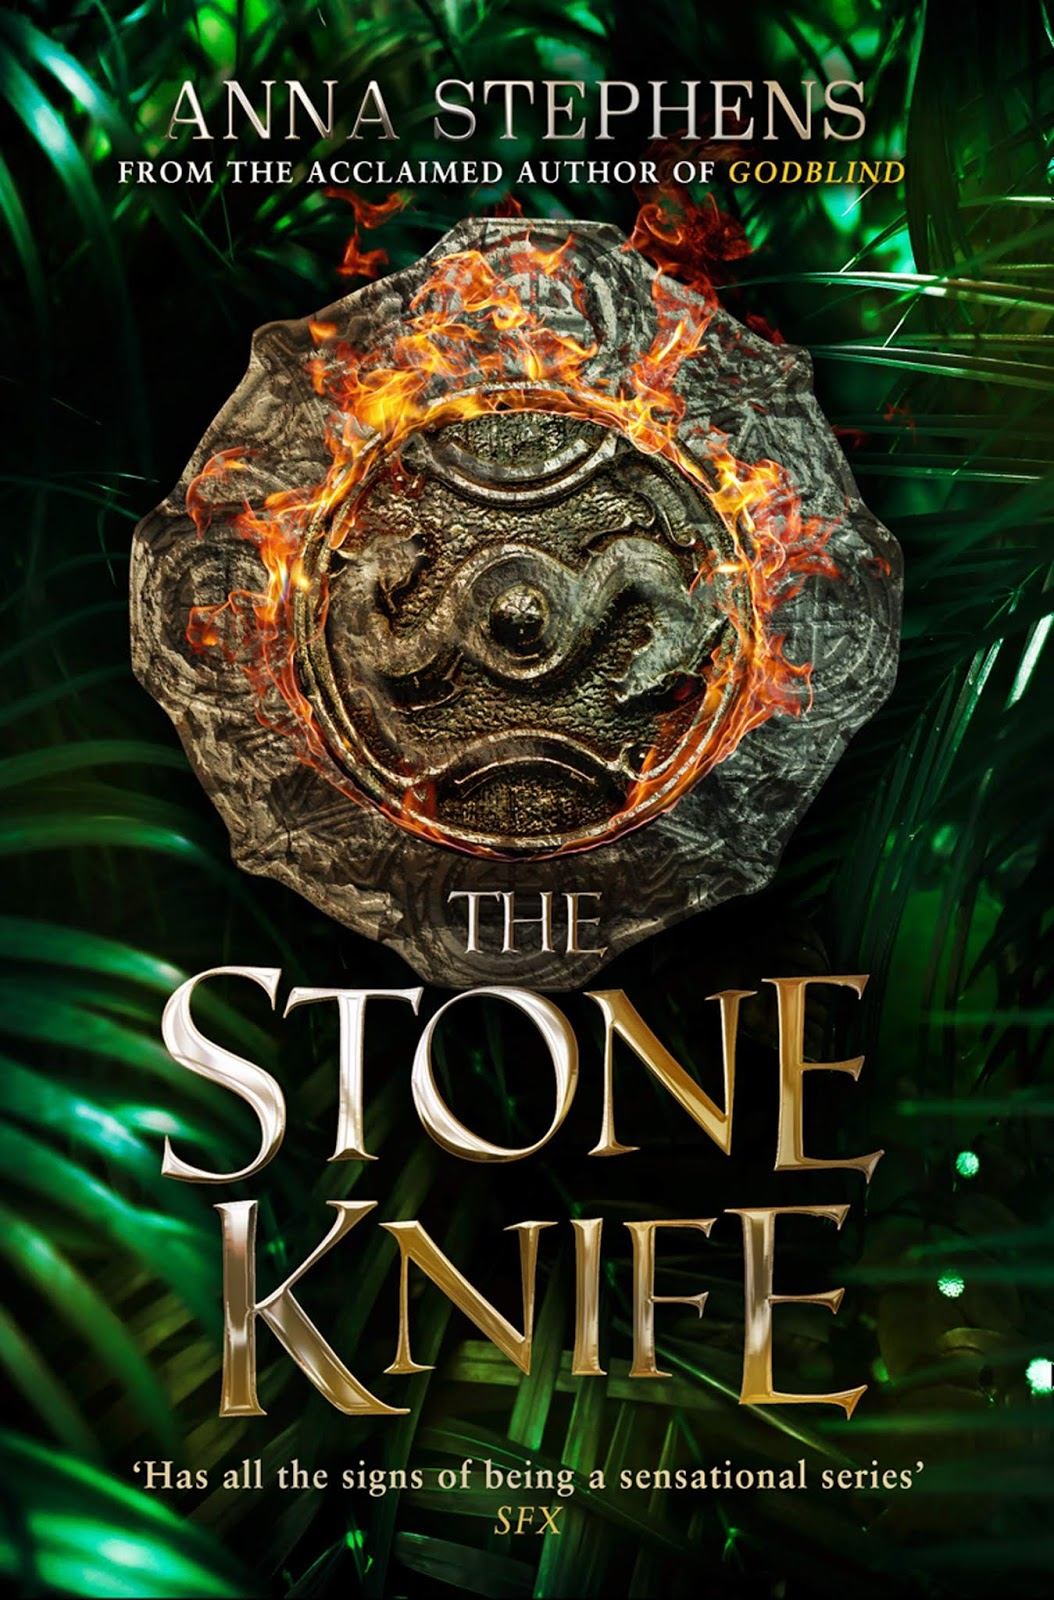 The Stone Knife by Anna Stephens